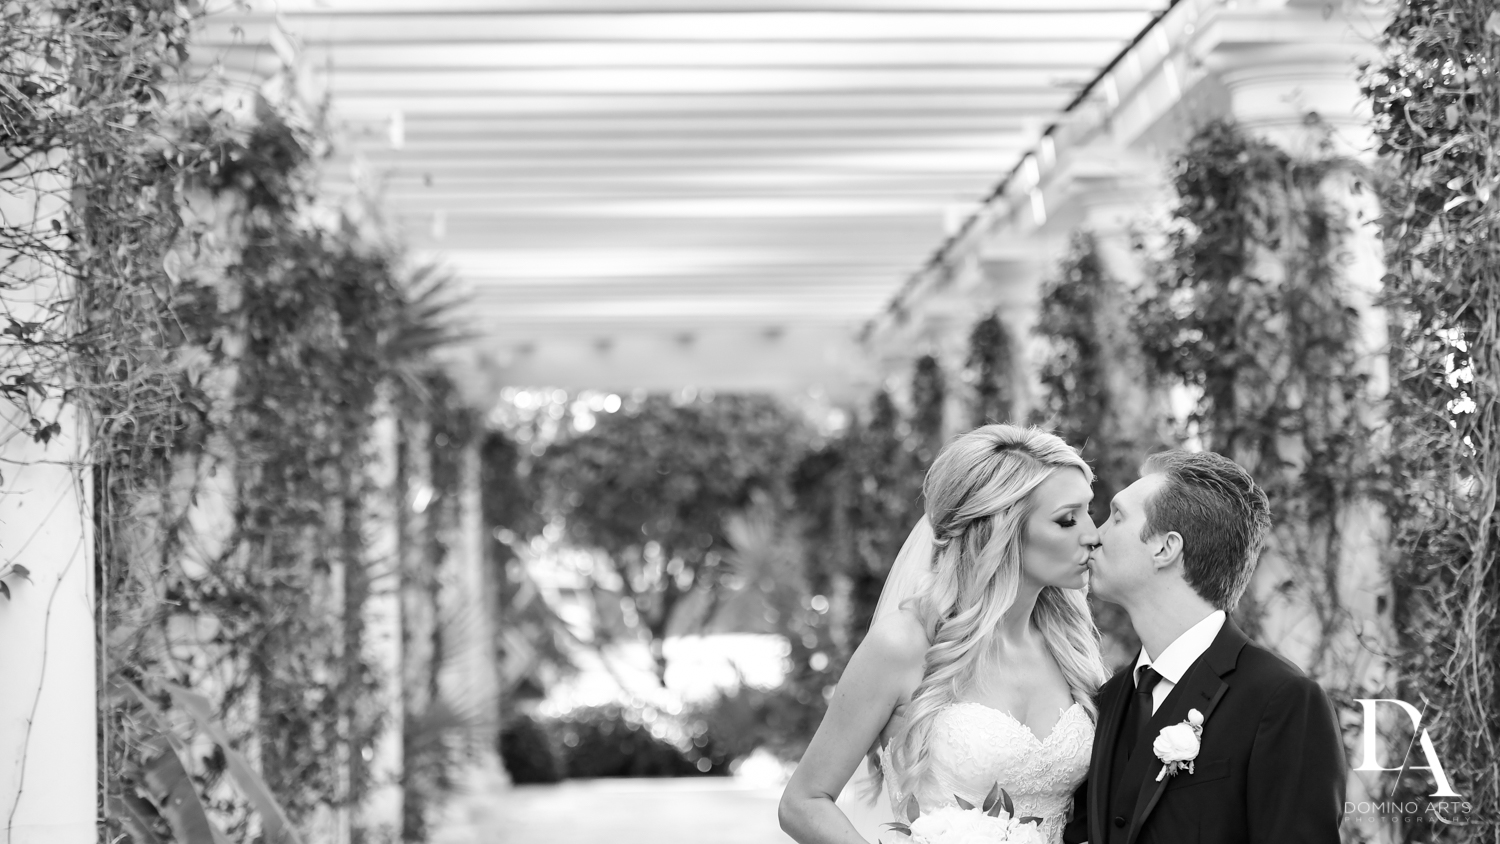 B&W photos at Extravagant Wedding at The Breakers Palm Beach by Domino Arts Photography